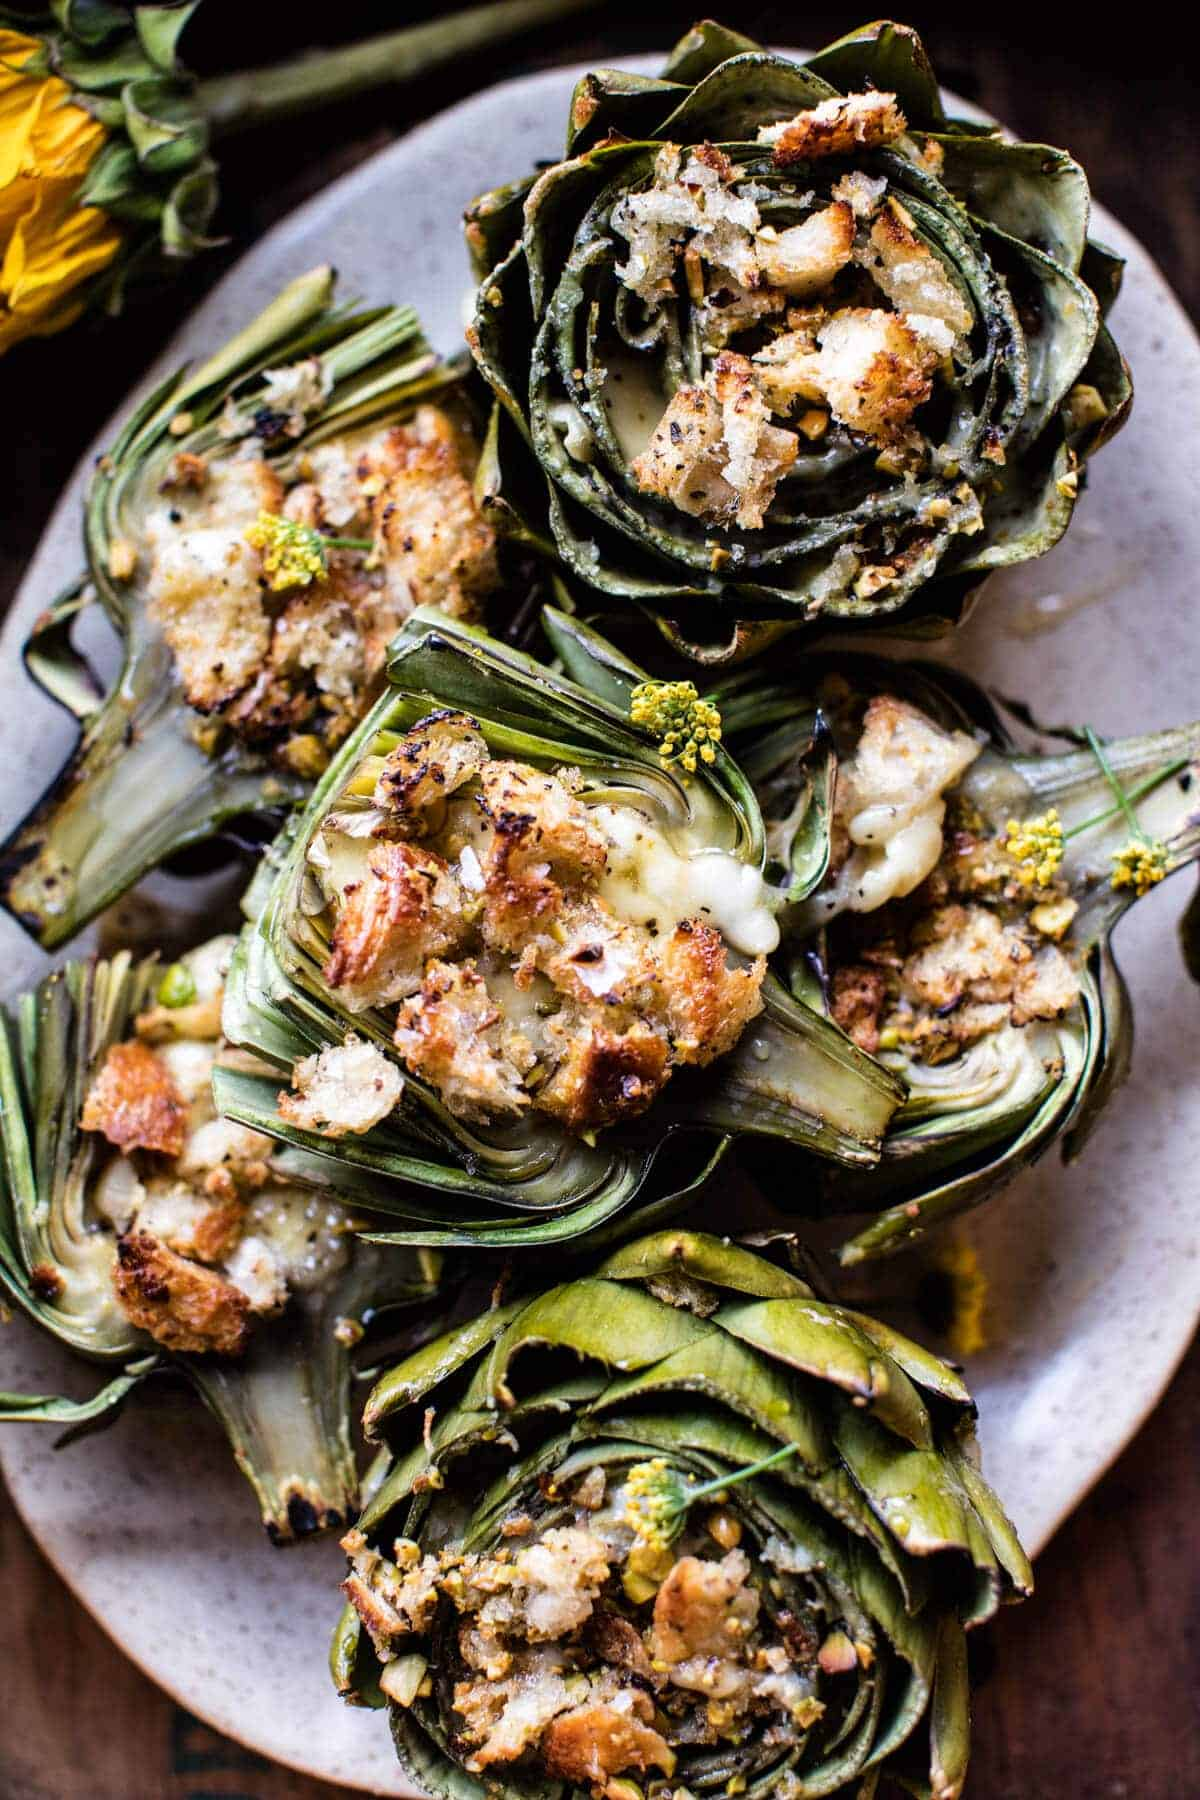 Artichoke With Baked Brie Sauce Recipes — Dishmaps